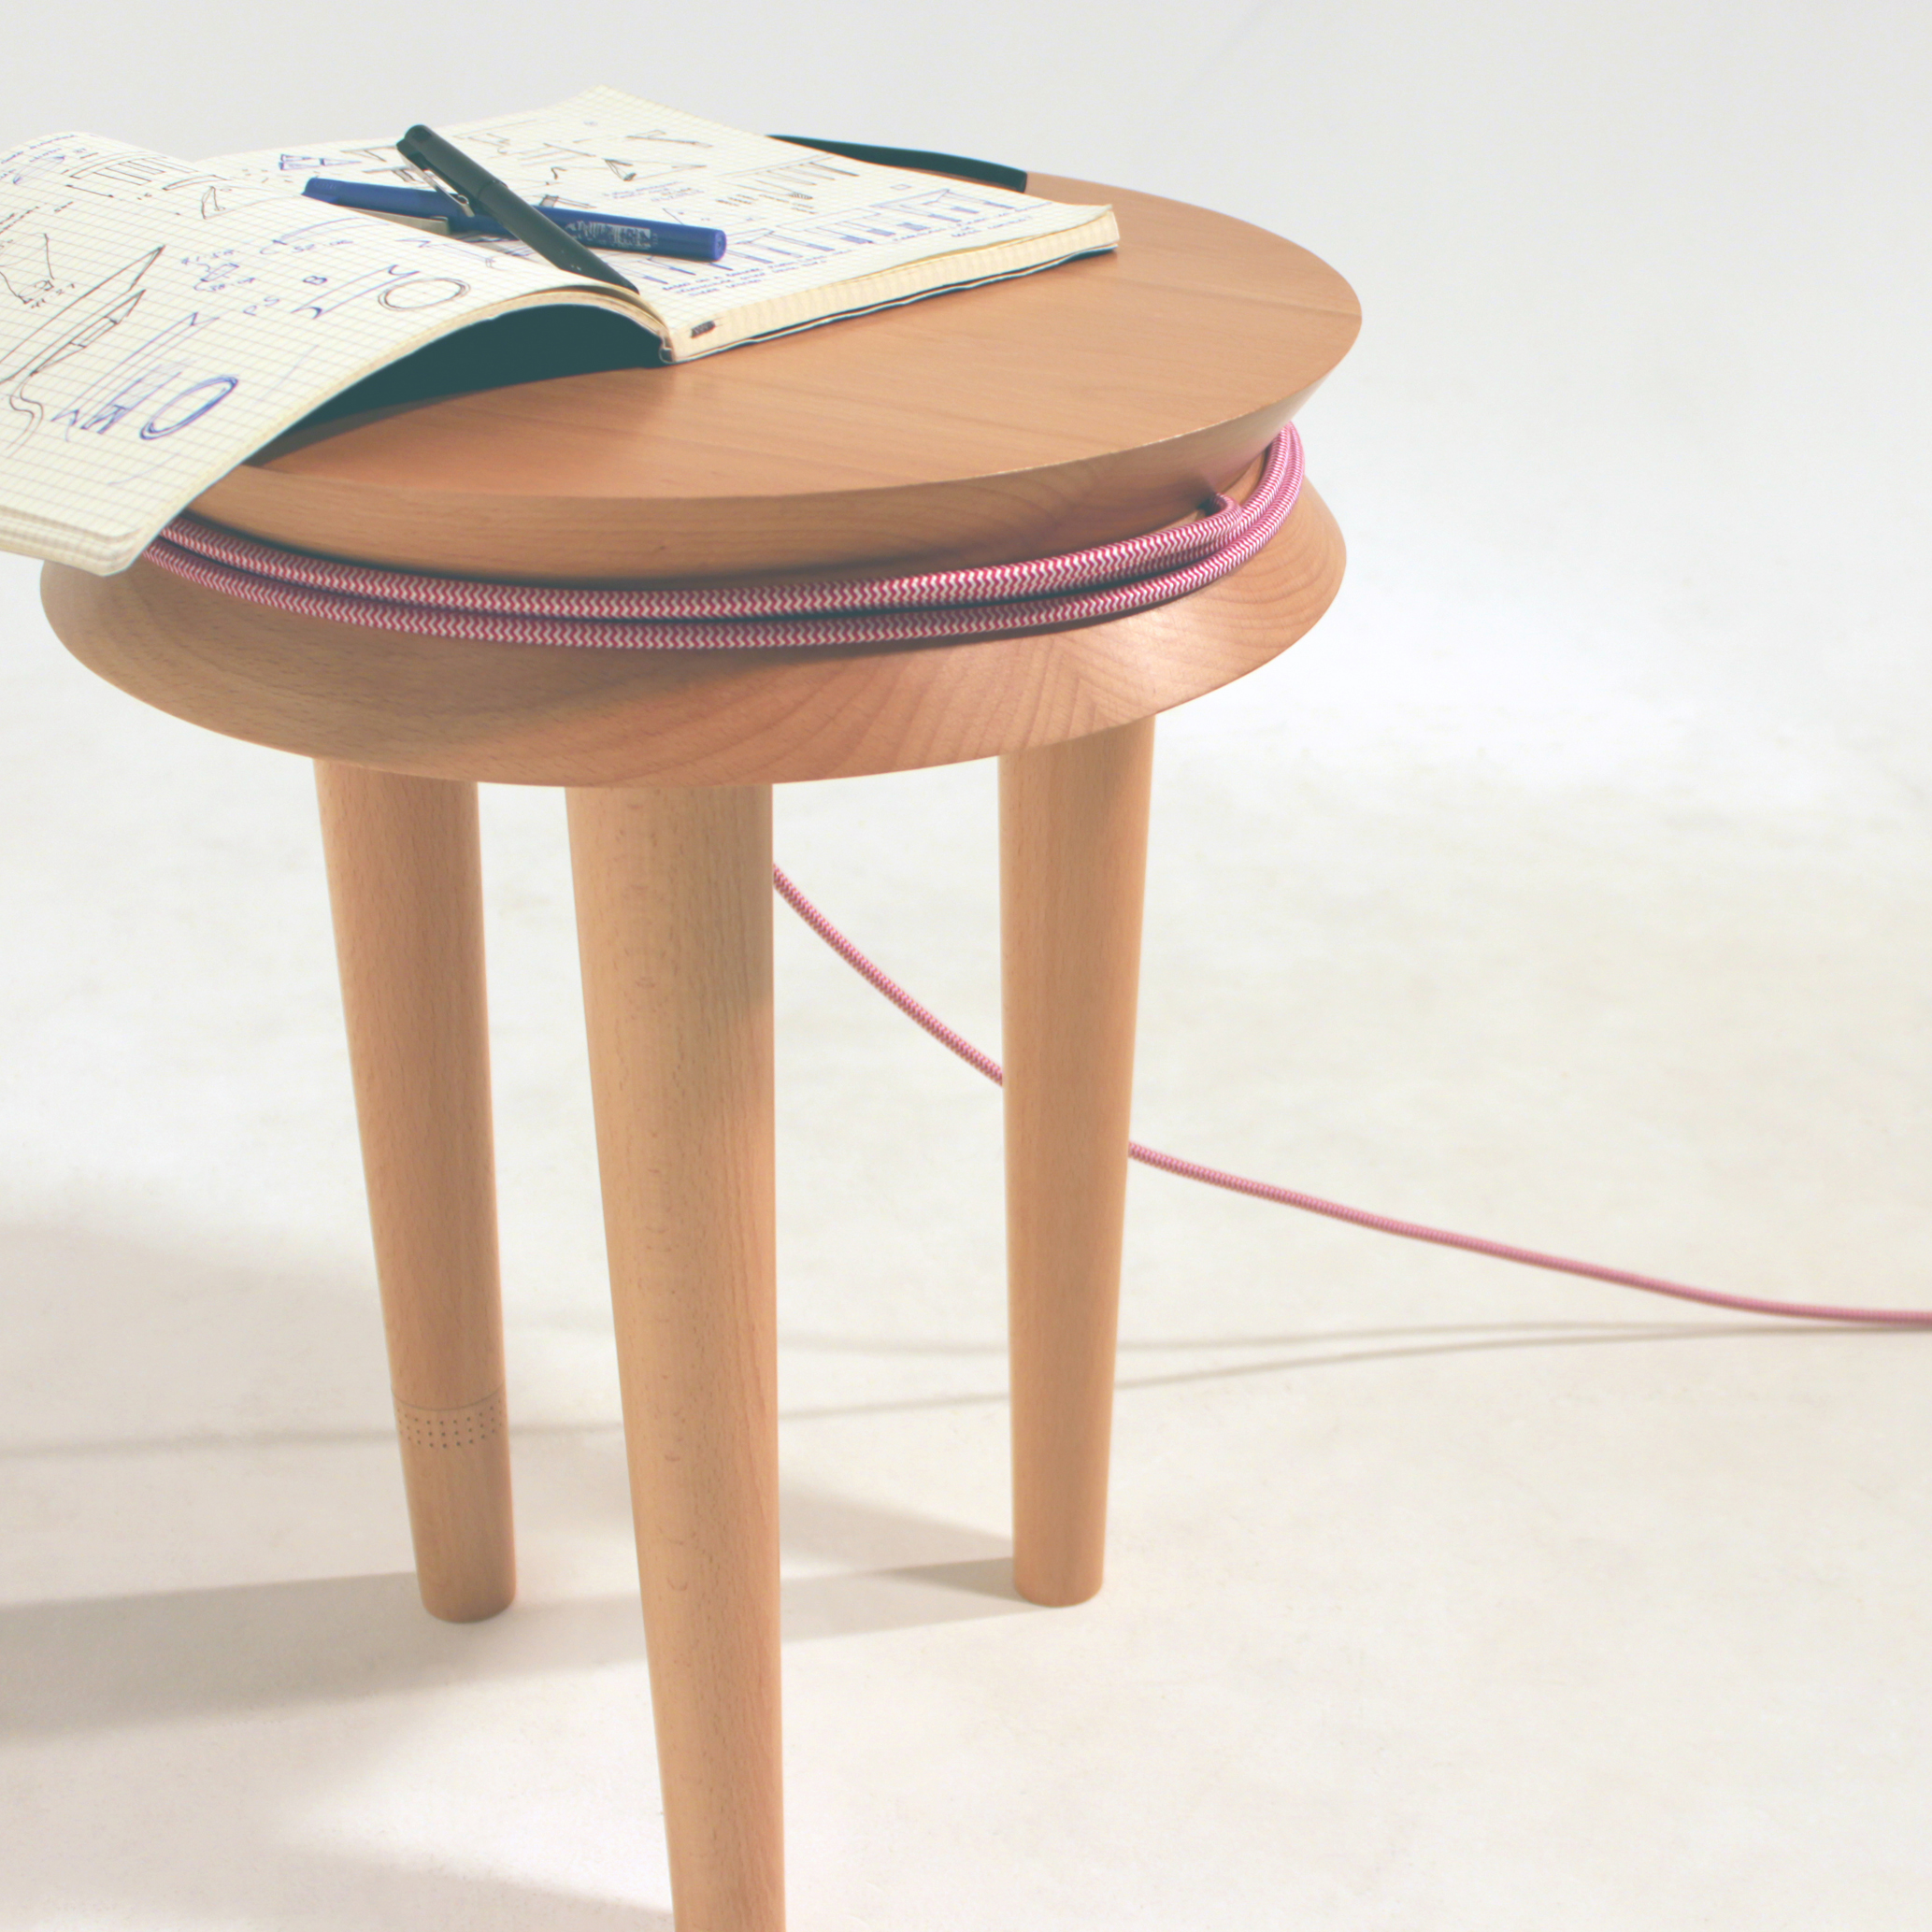 Spoolstool.  Joe Levy. Victoria University.